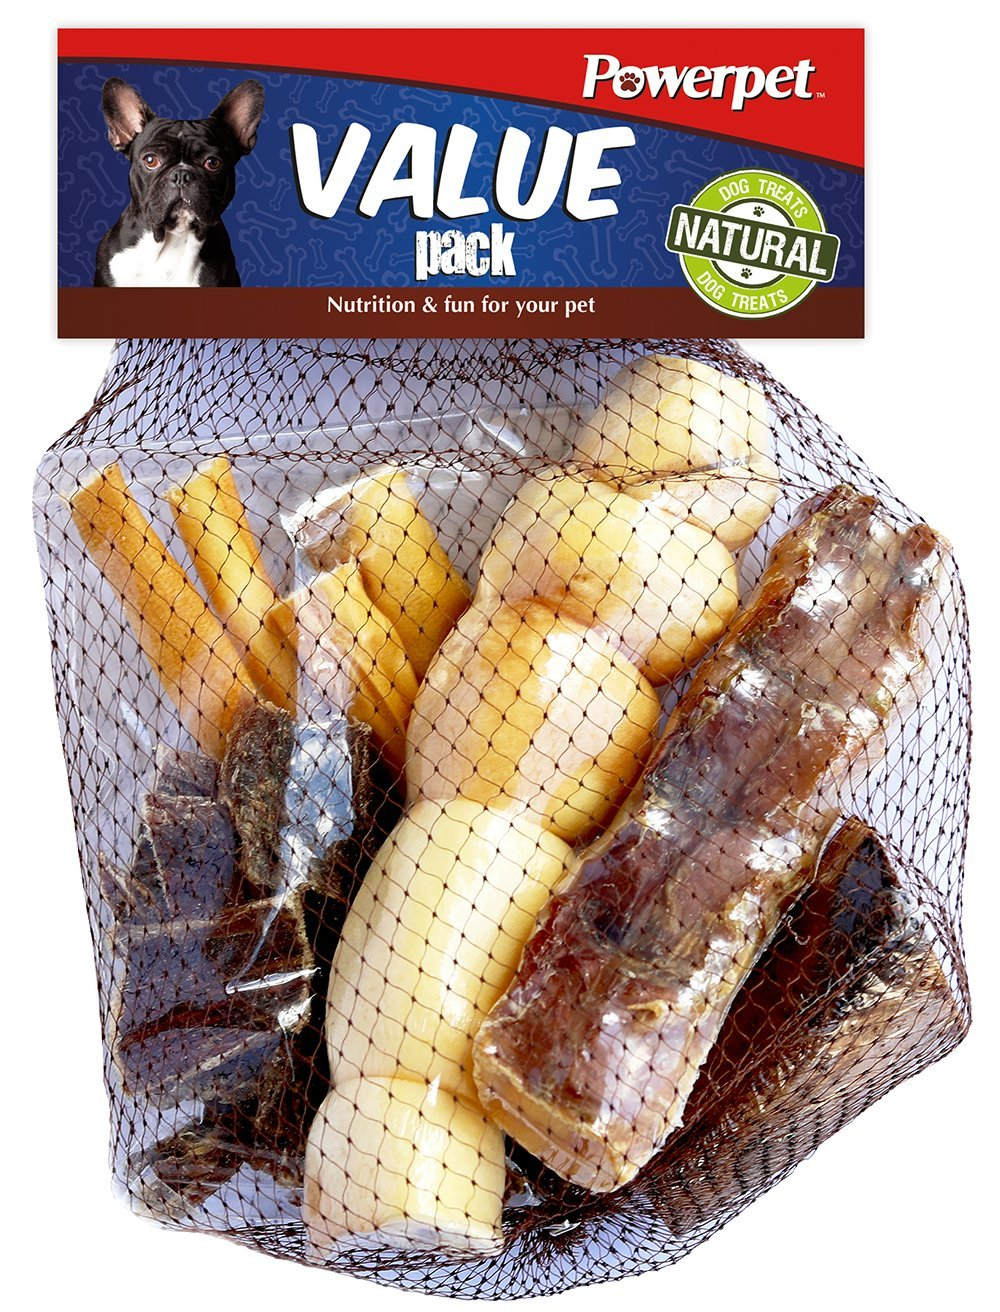 Powerpet: Value Pack - Natural Dog Chews - Helps Improve Dental Hygiene - 100% Natural & Highly Digestible - Protein with Low Fat - Smoked Beef Bone - Beef Jerky Bites, Trachea, Cheek Roll, Cow Tail